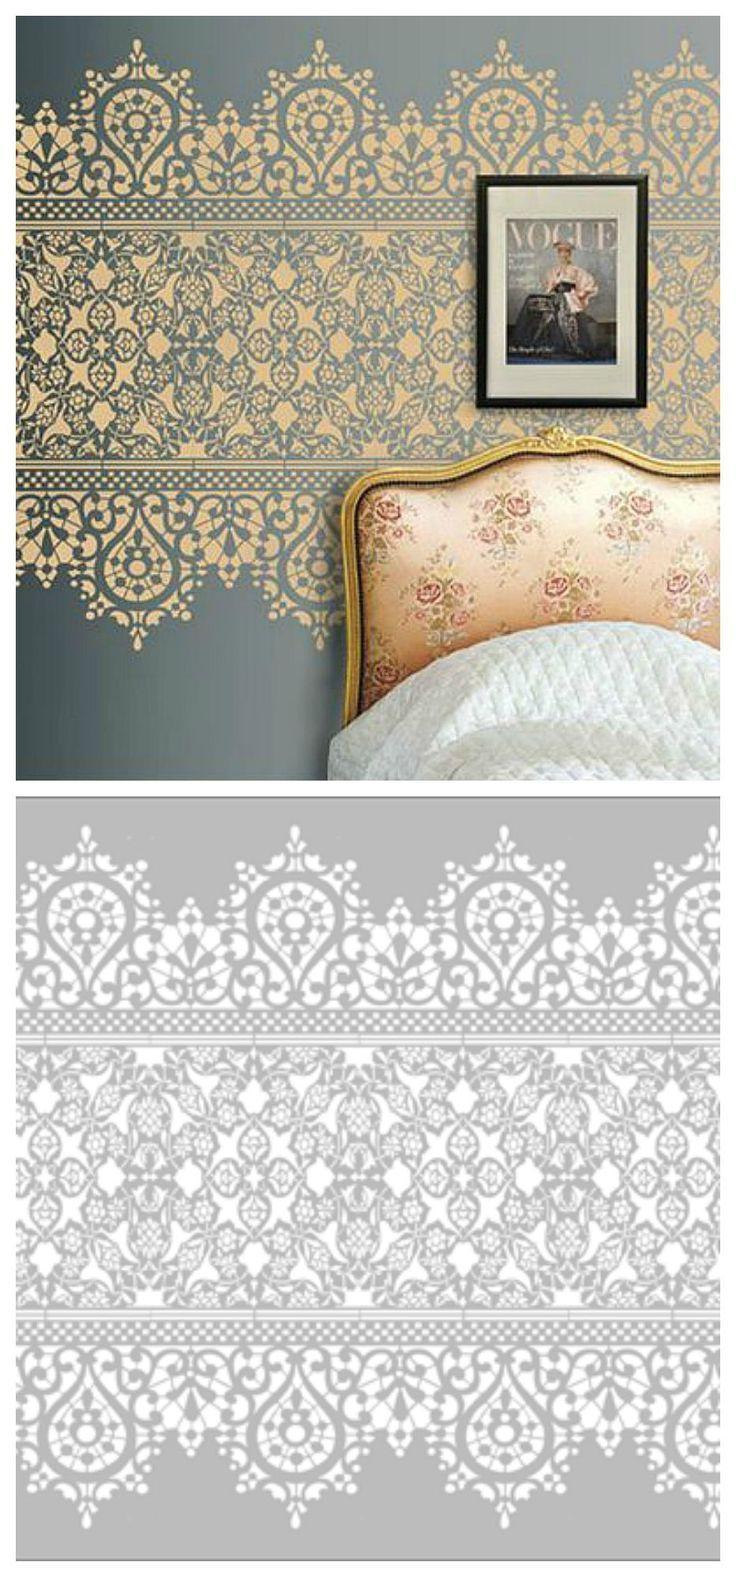 Wall stencil lace wall stencil creates a delicate pattern wall stencil lace wall stencil creates a delicate pattern amipublicfo Image collections